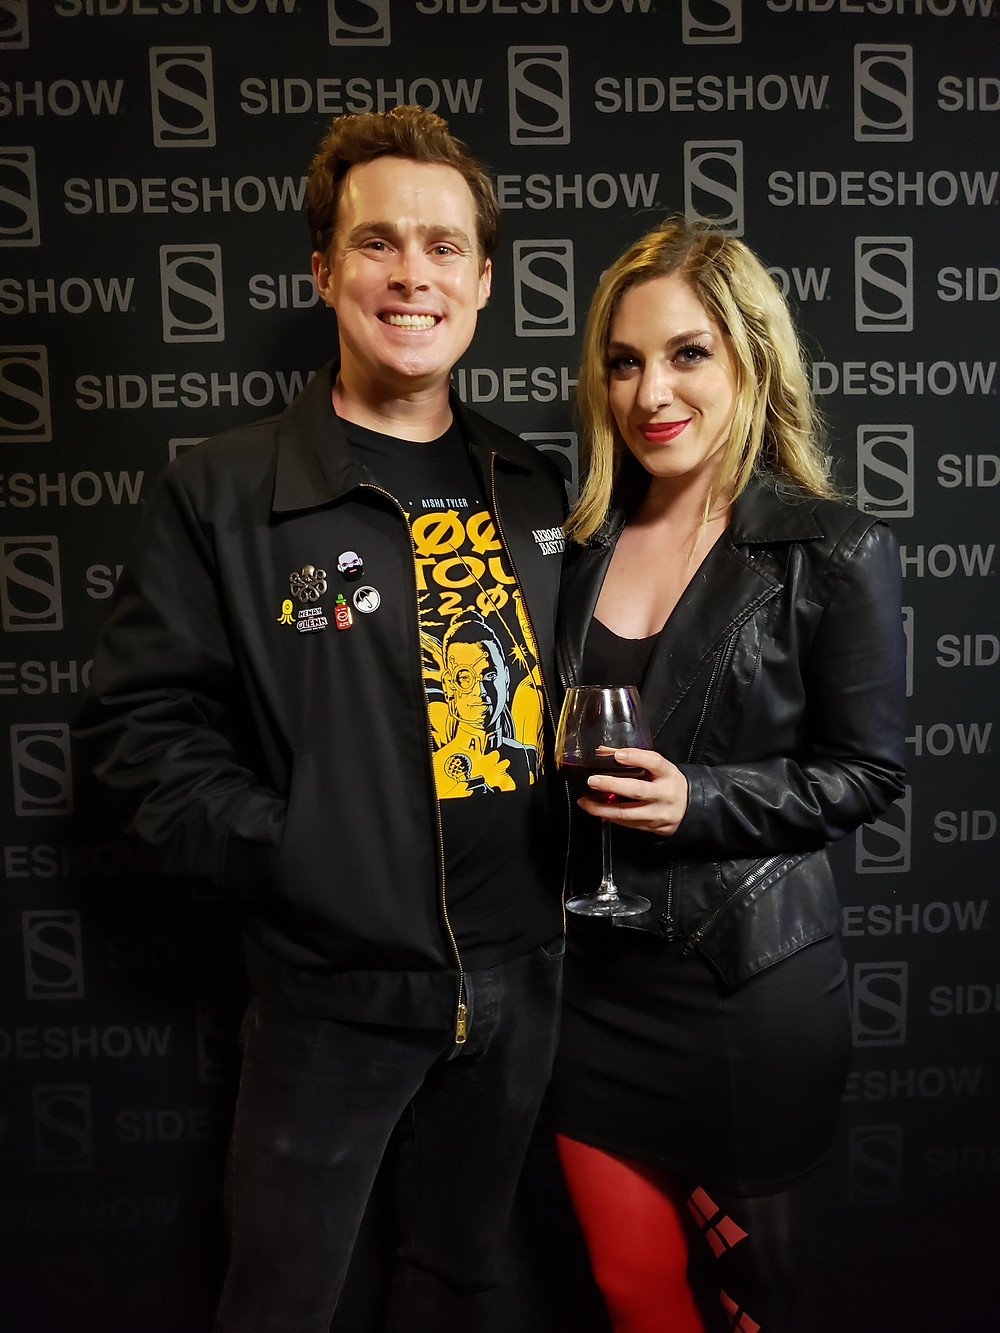 Sideshow Collectibles party